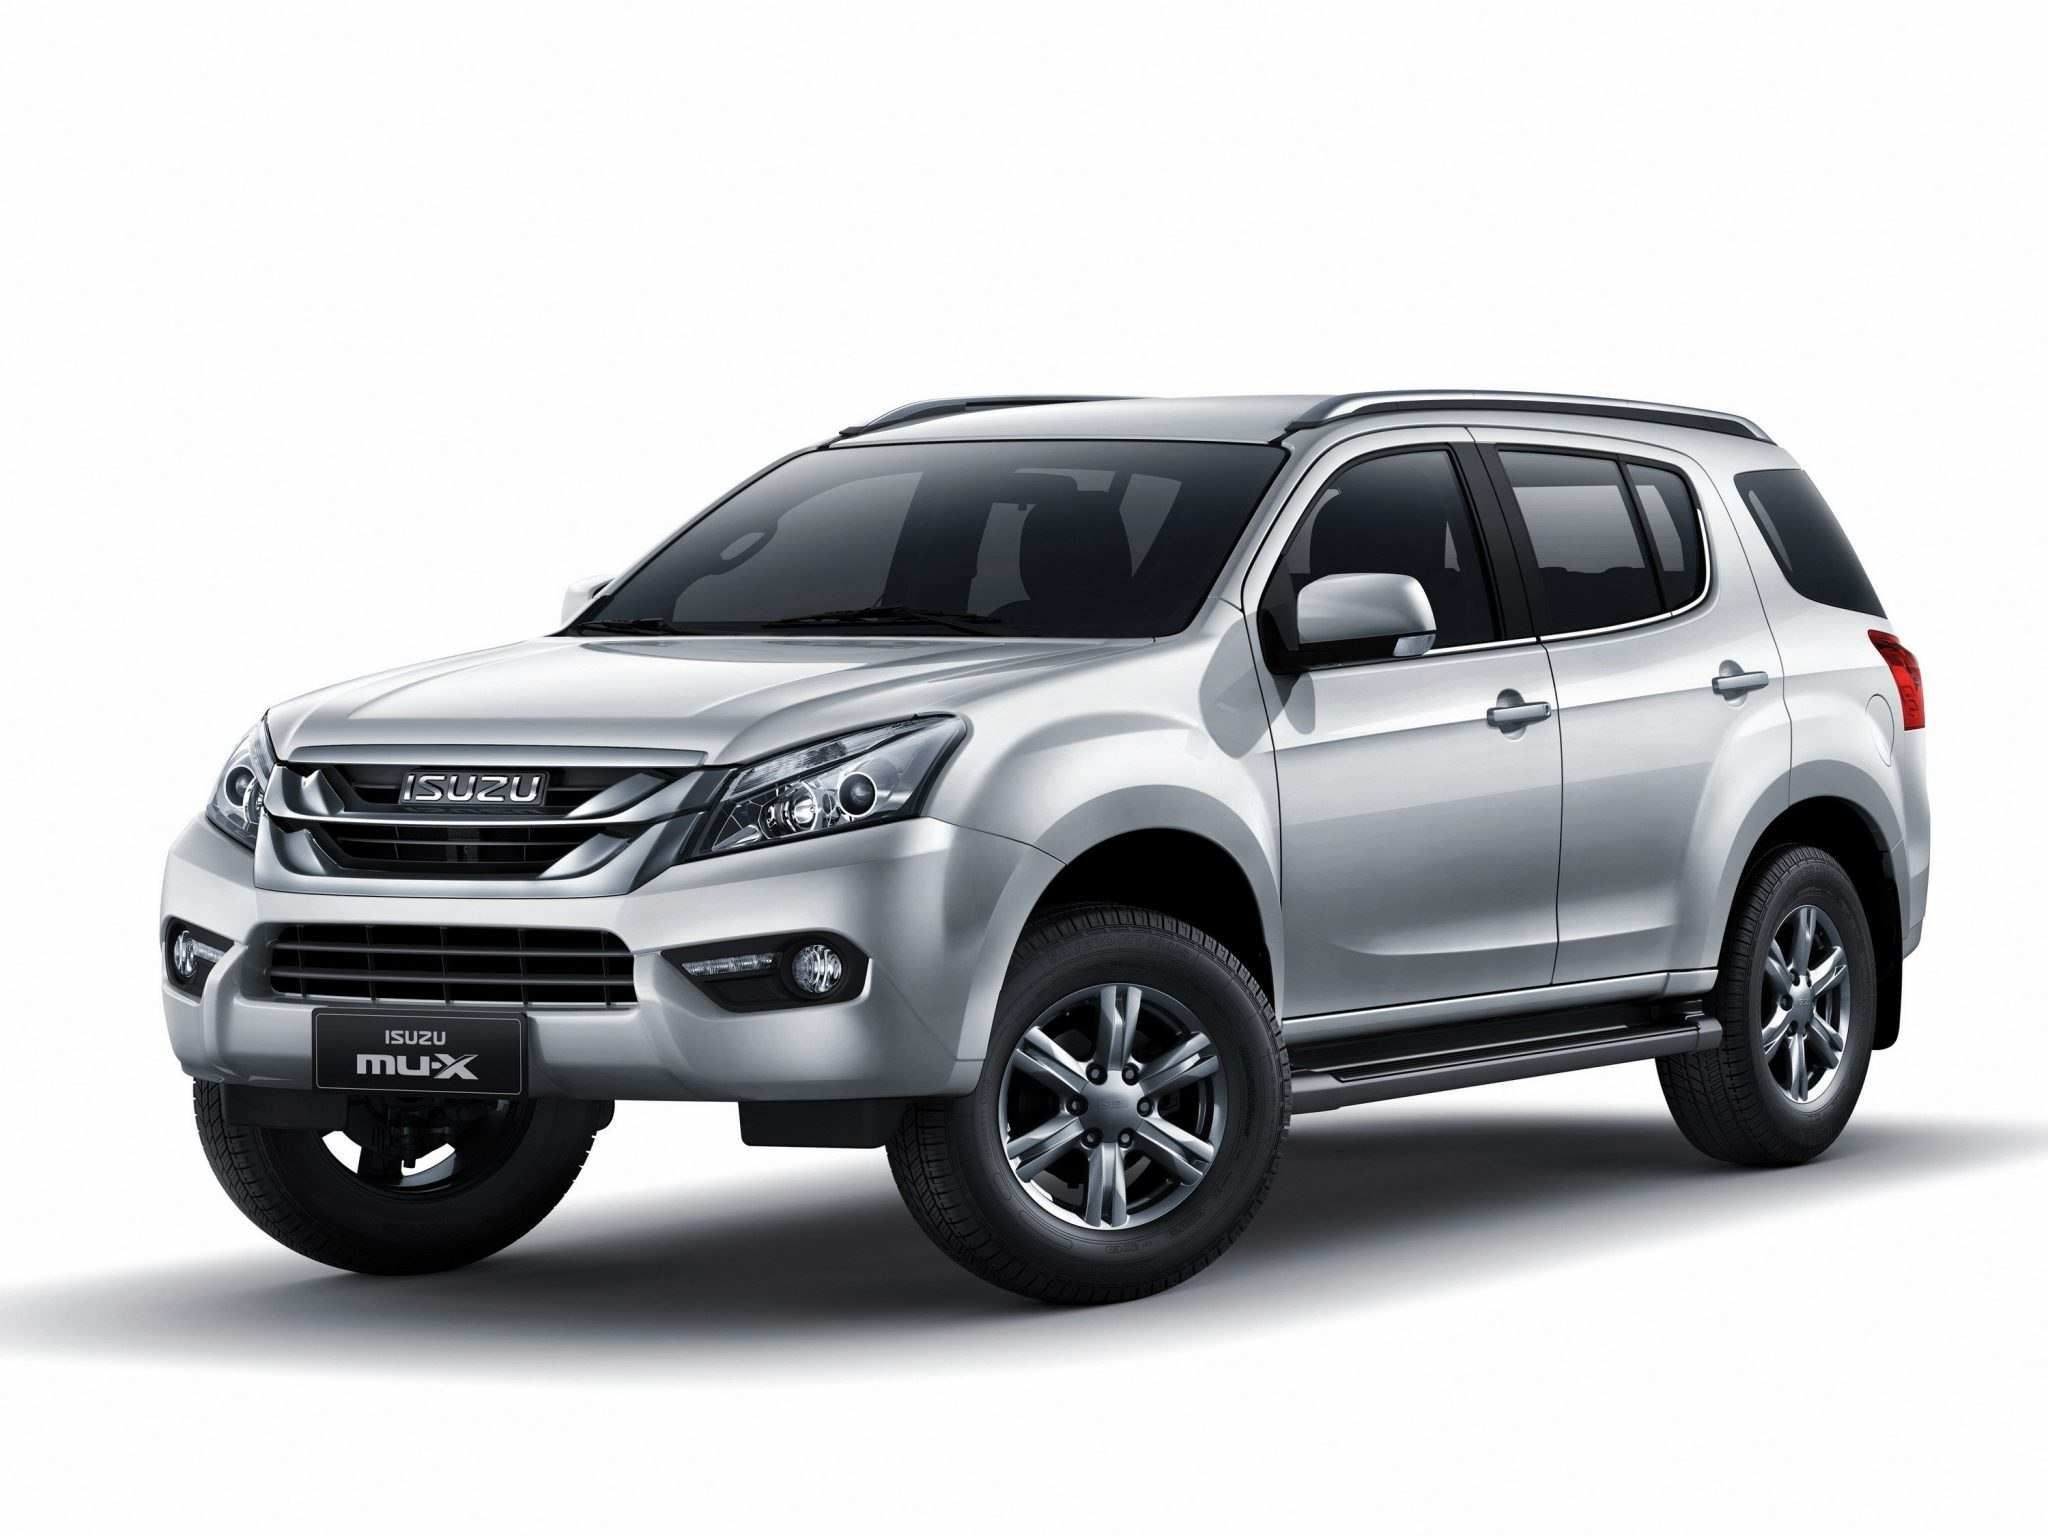 62 New 2019 Isuzu Mu X Ratings with 2019 Isuzu Mu X